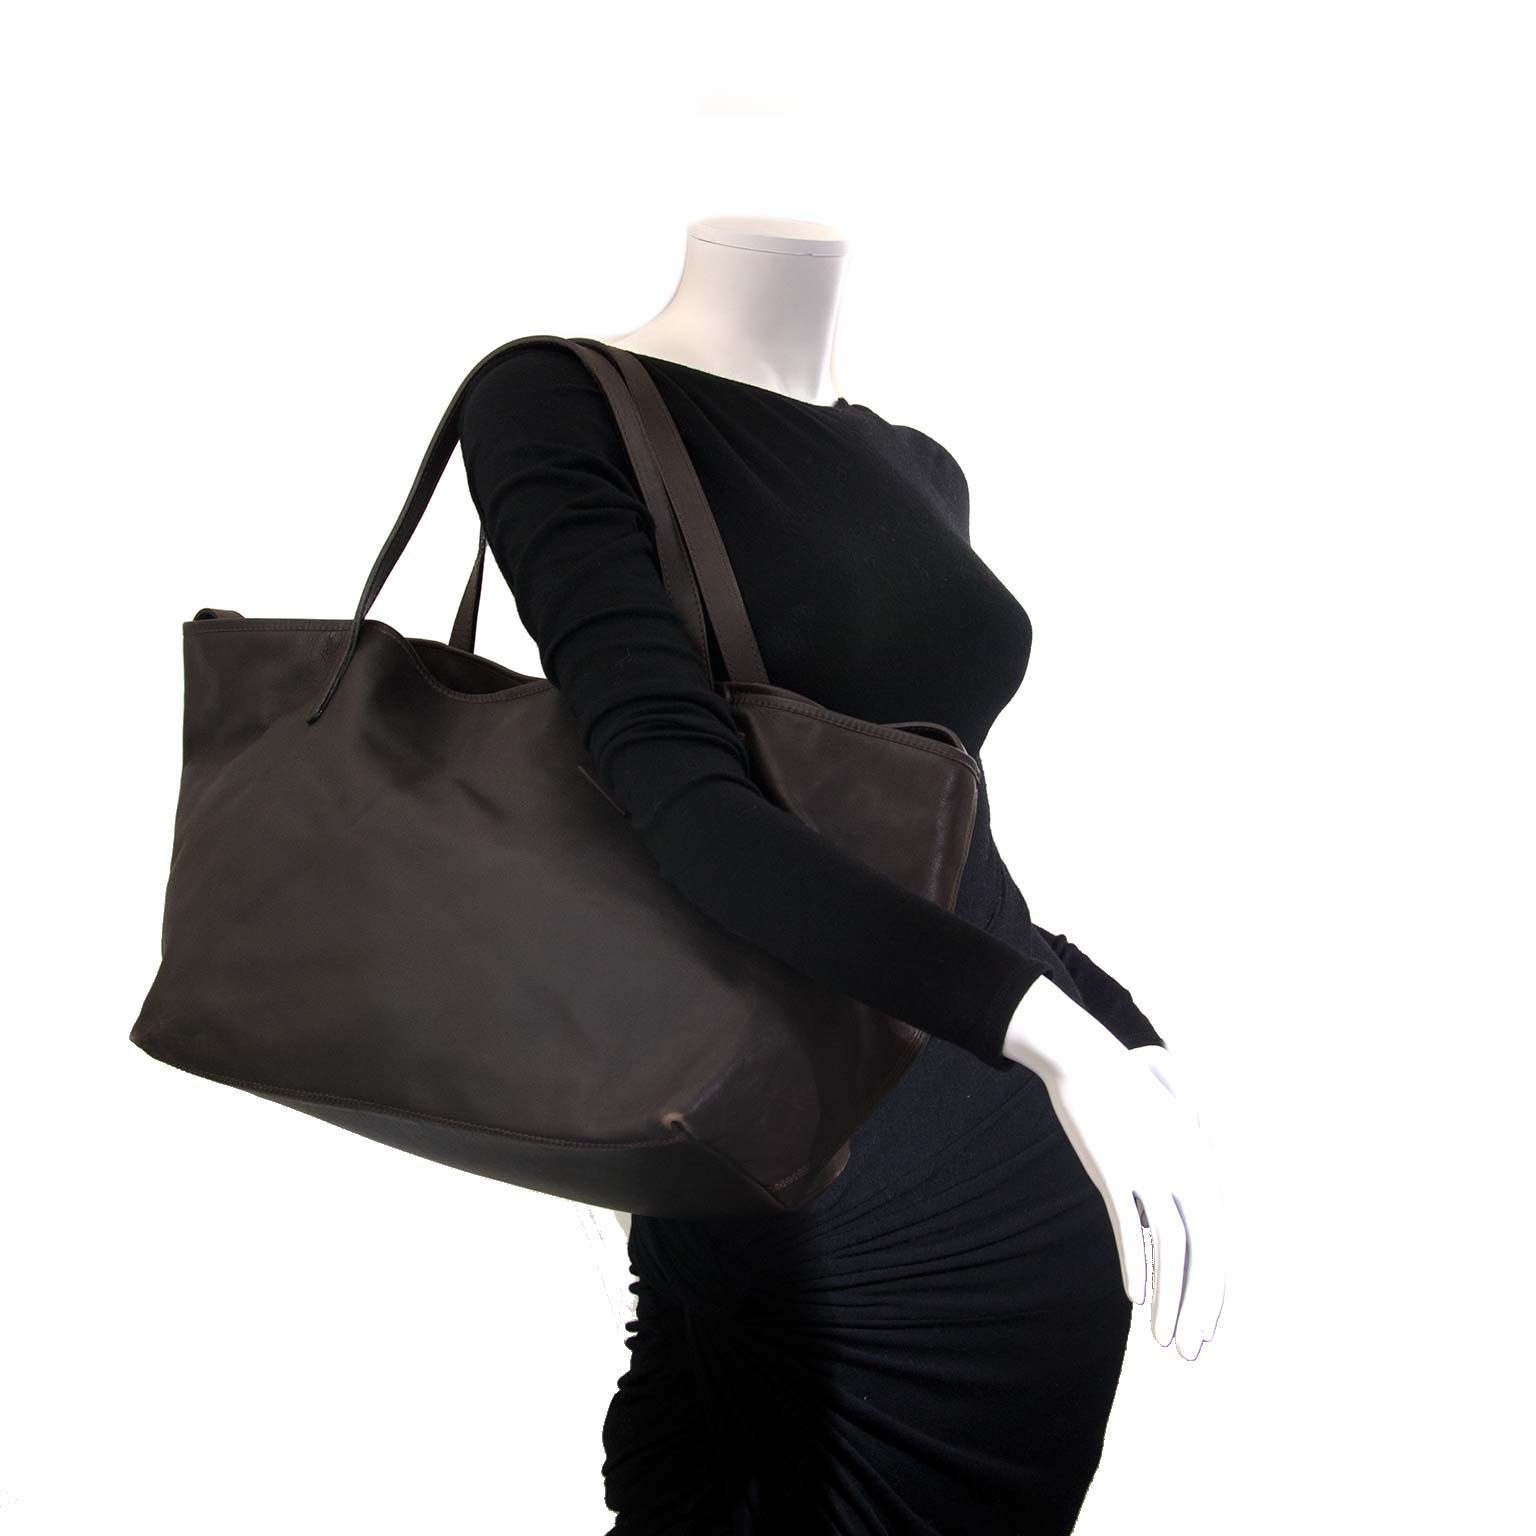 Max Mara Brown Leather Tote Bag now for sale at labellov vintage fashion webshop belgium